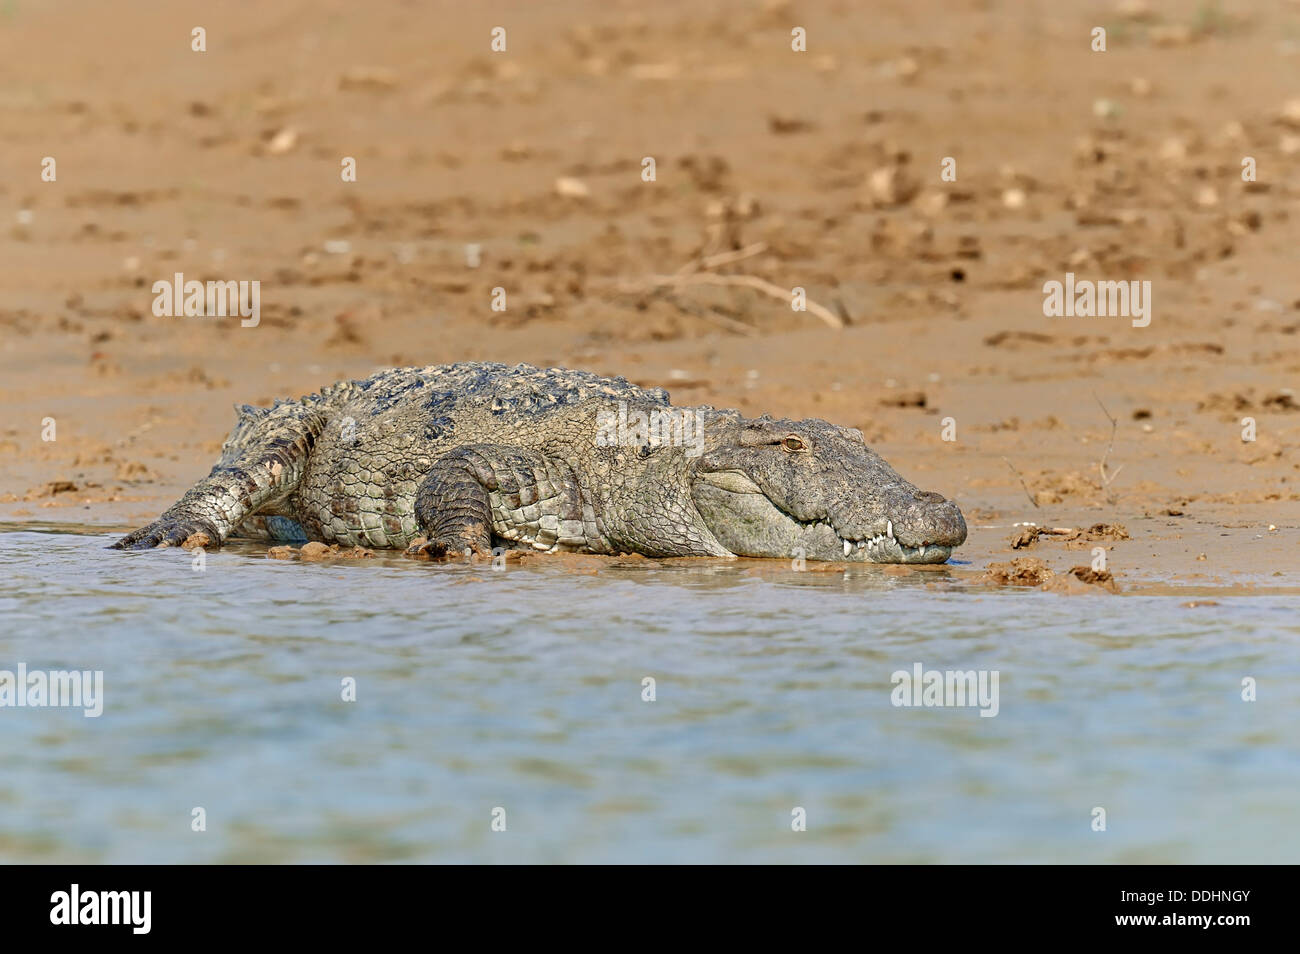 Mugger Crocodiles Stock Photos and Images